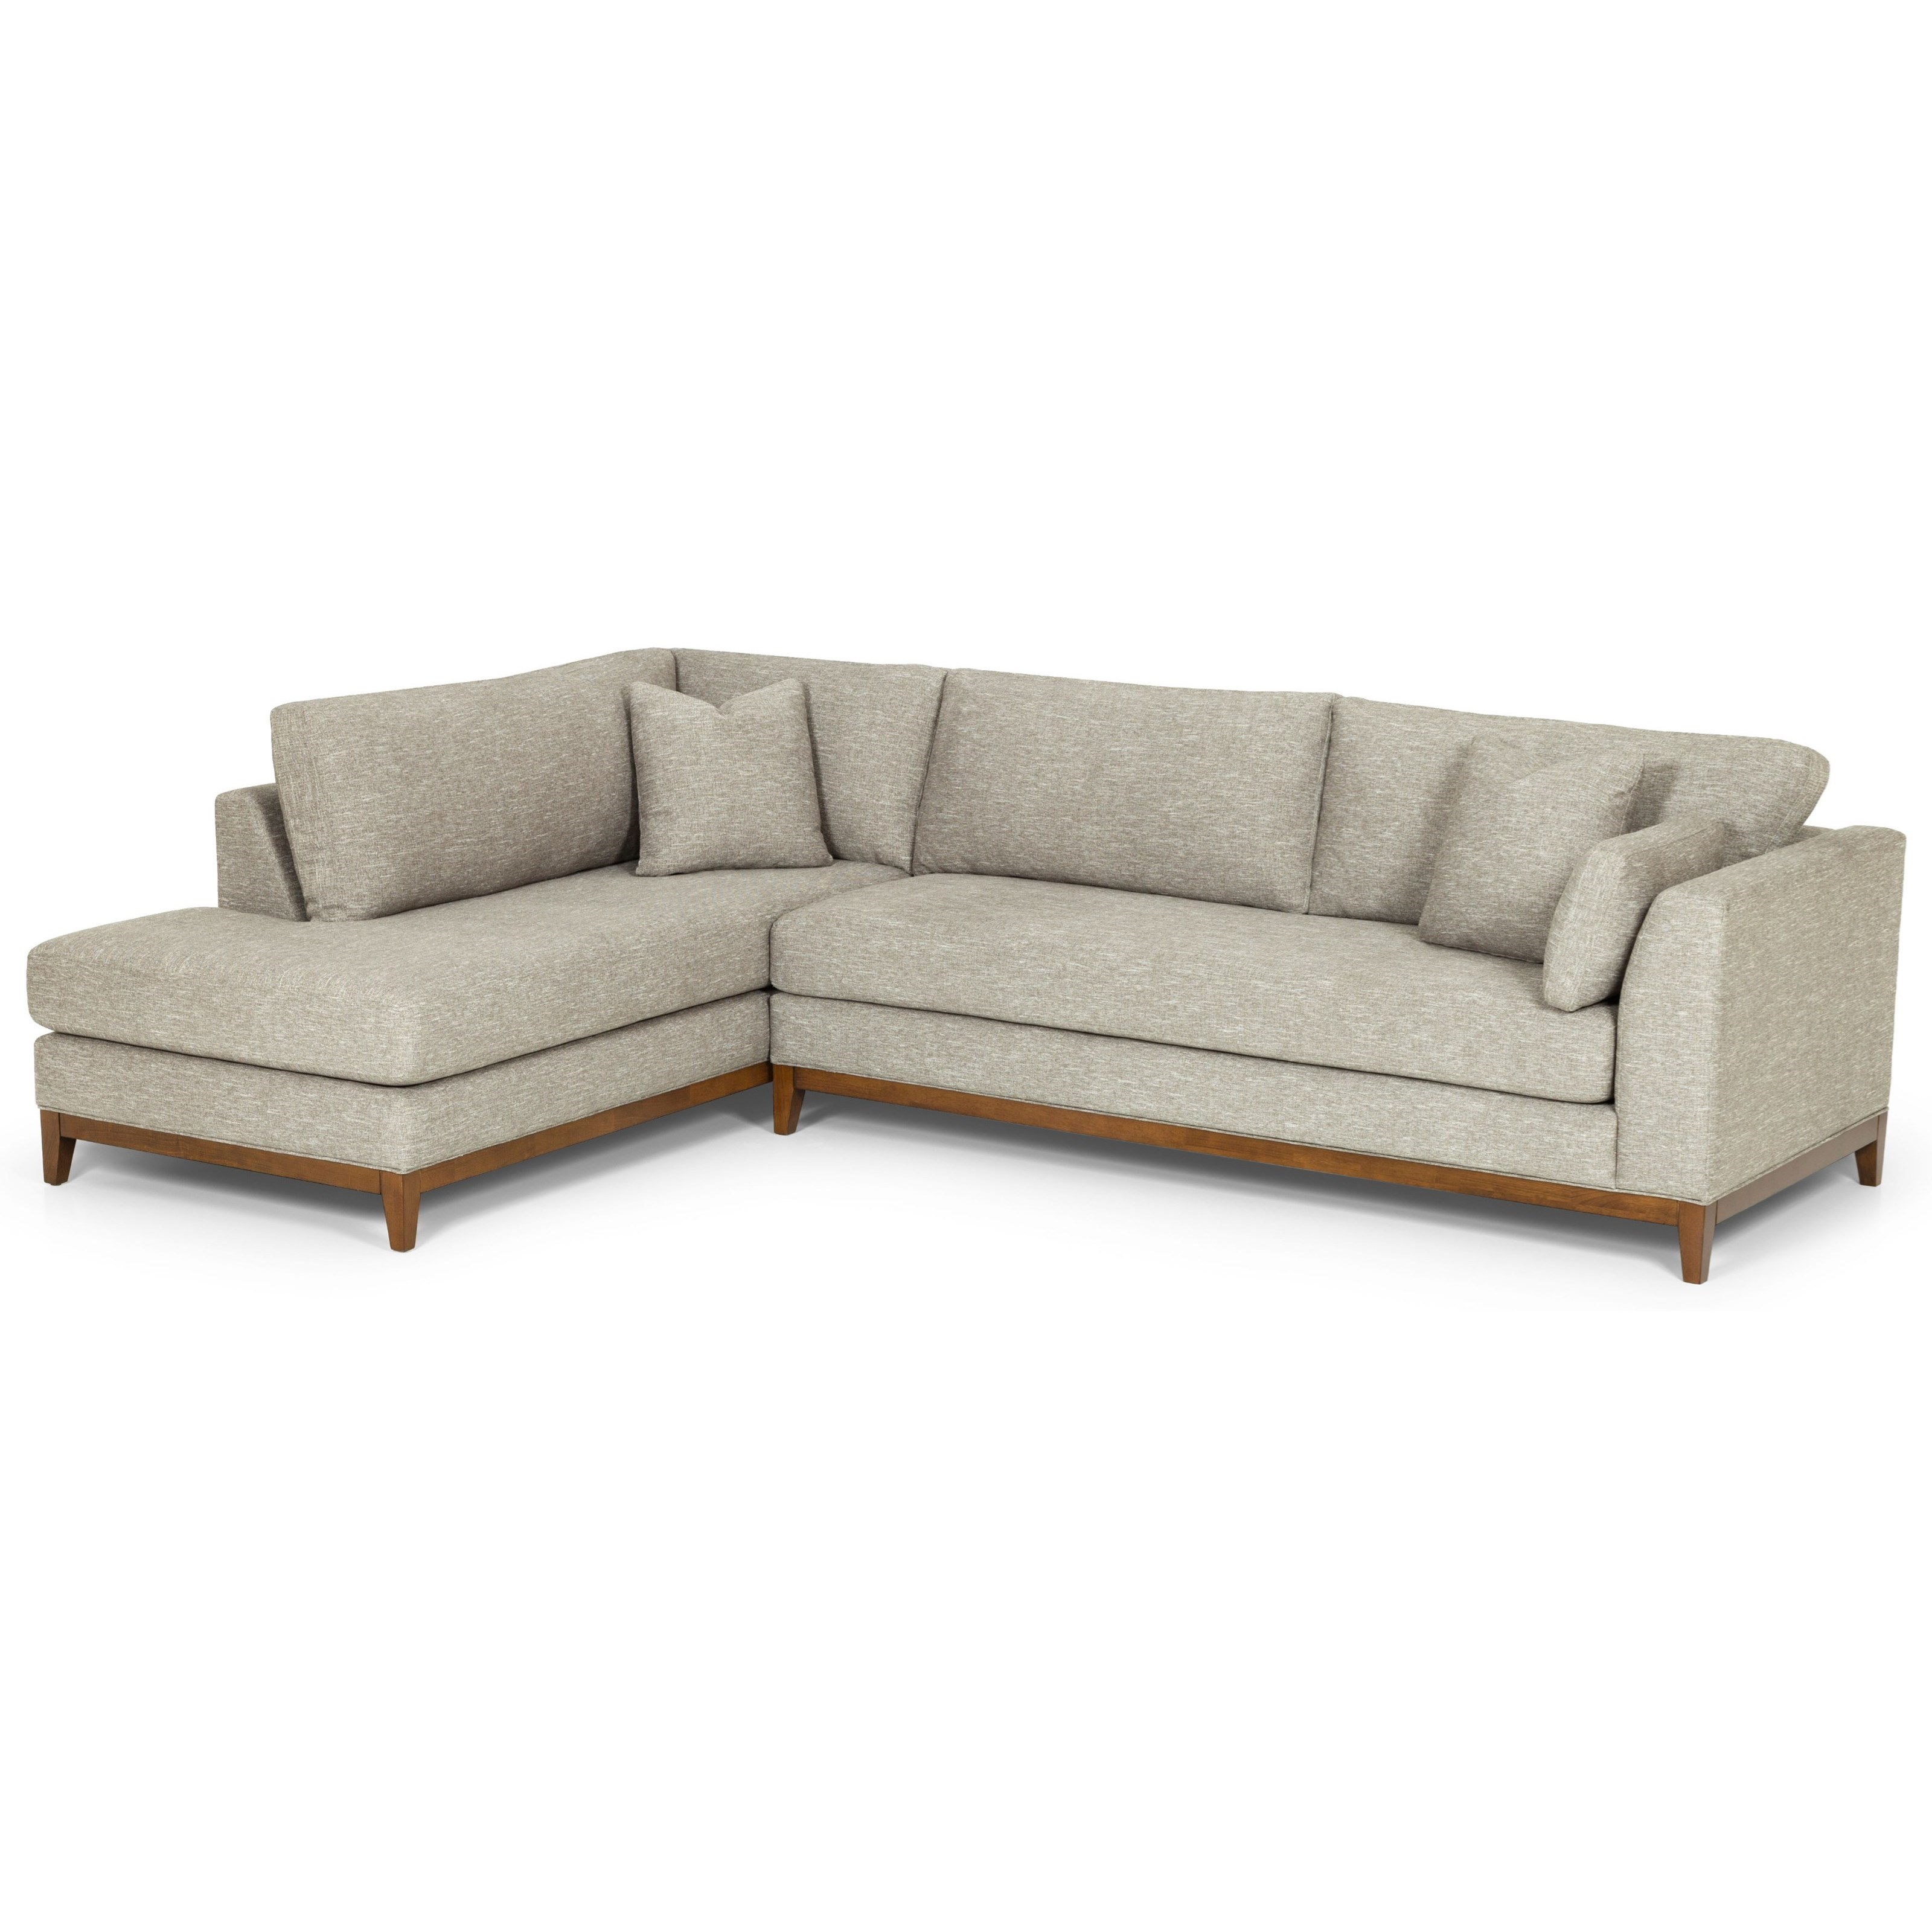 499 2-Piece Sectional w/ Chaise by Stanton at Wilson's Furniture